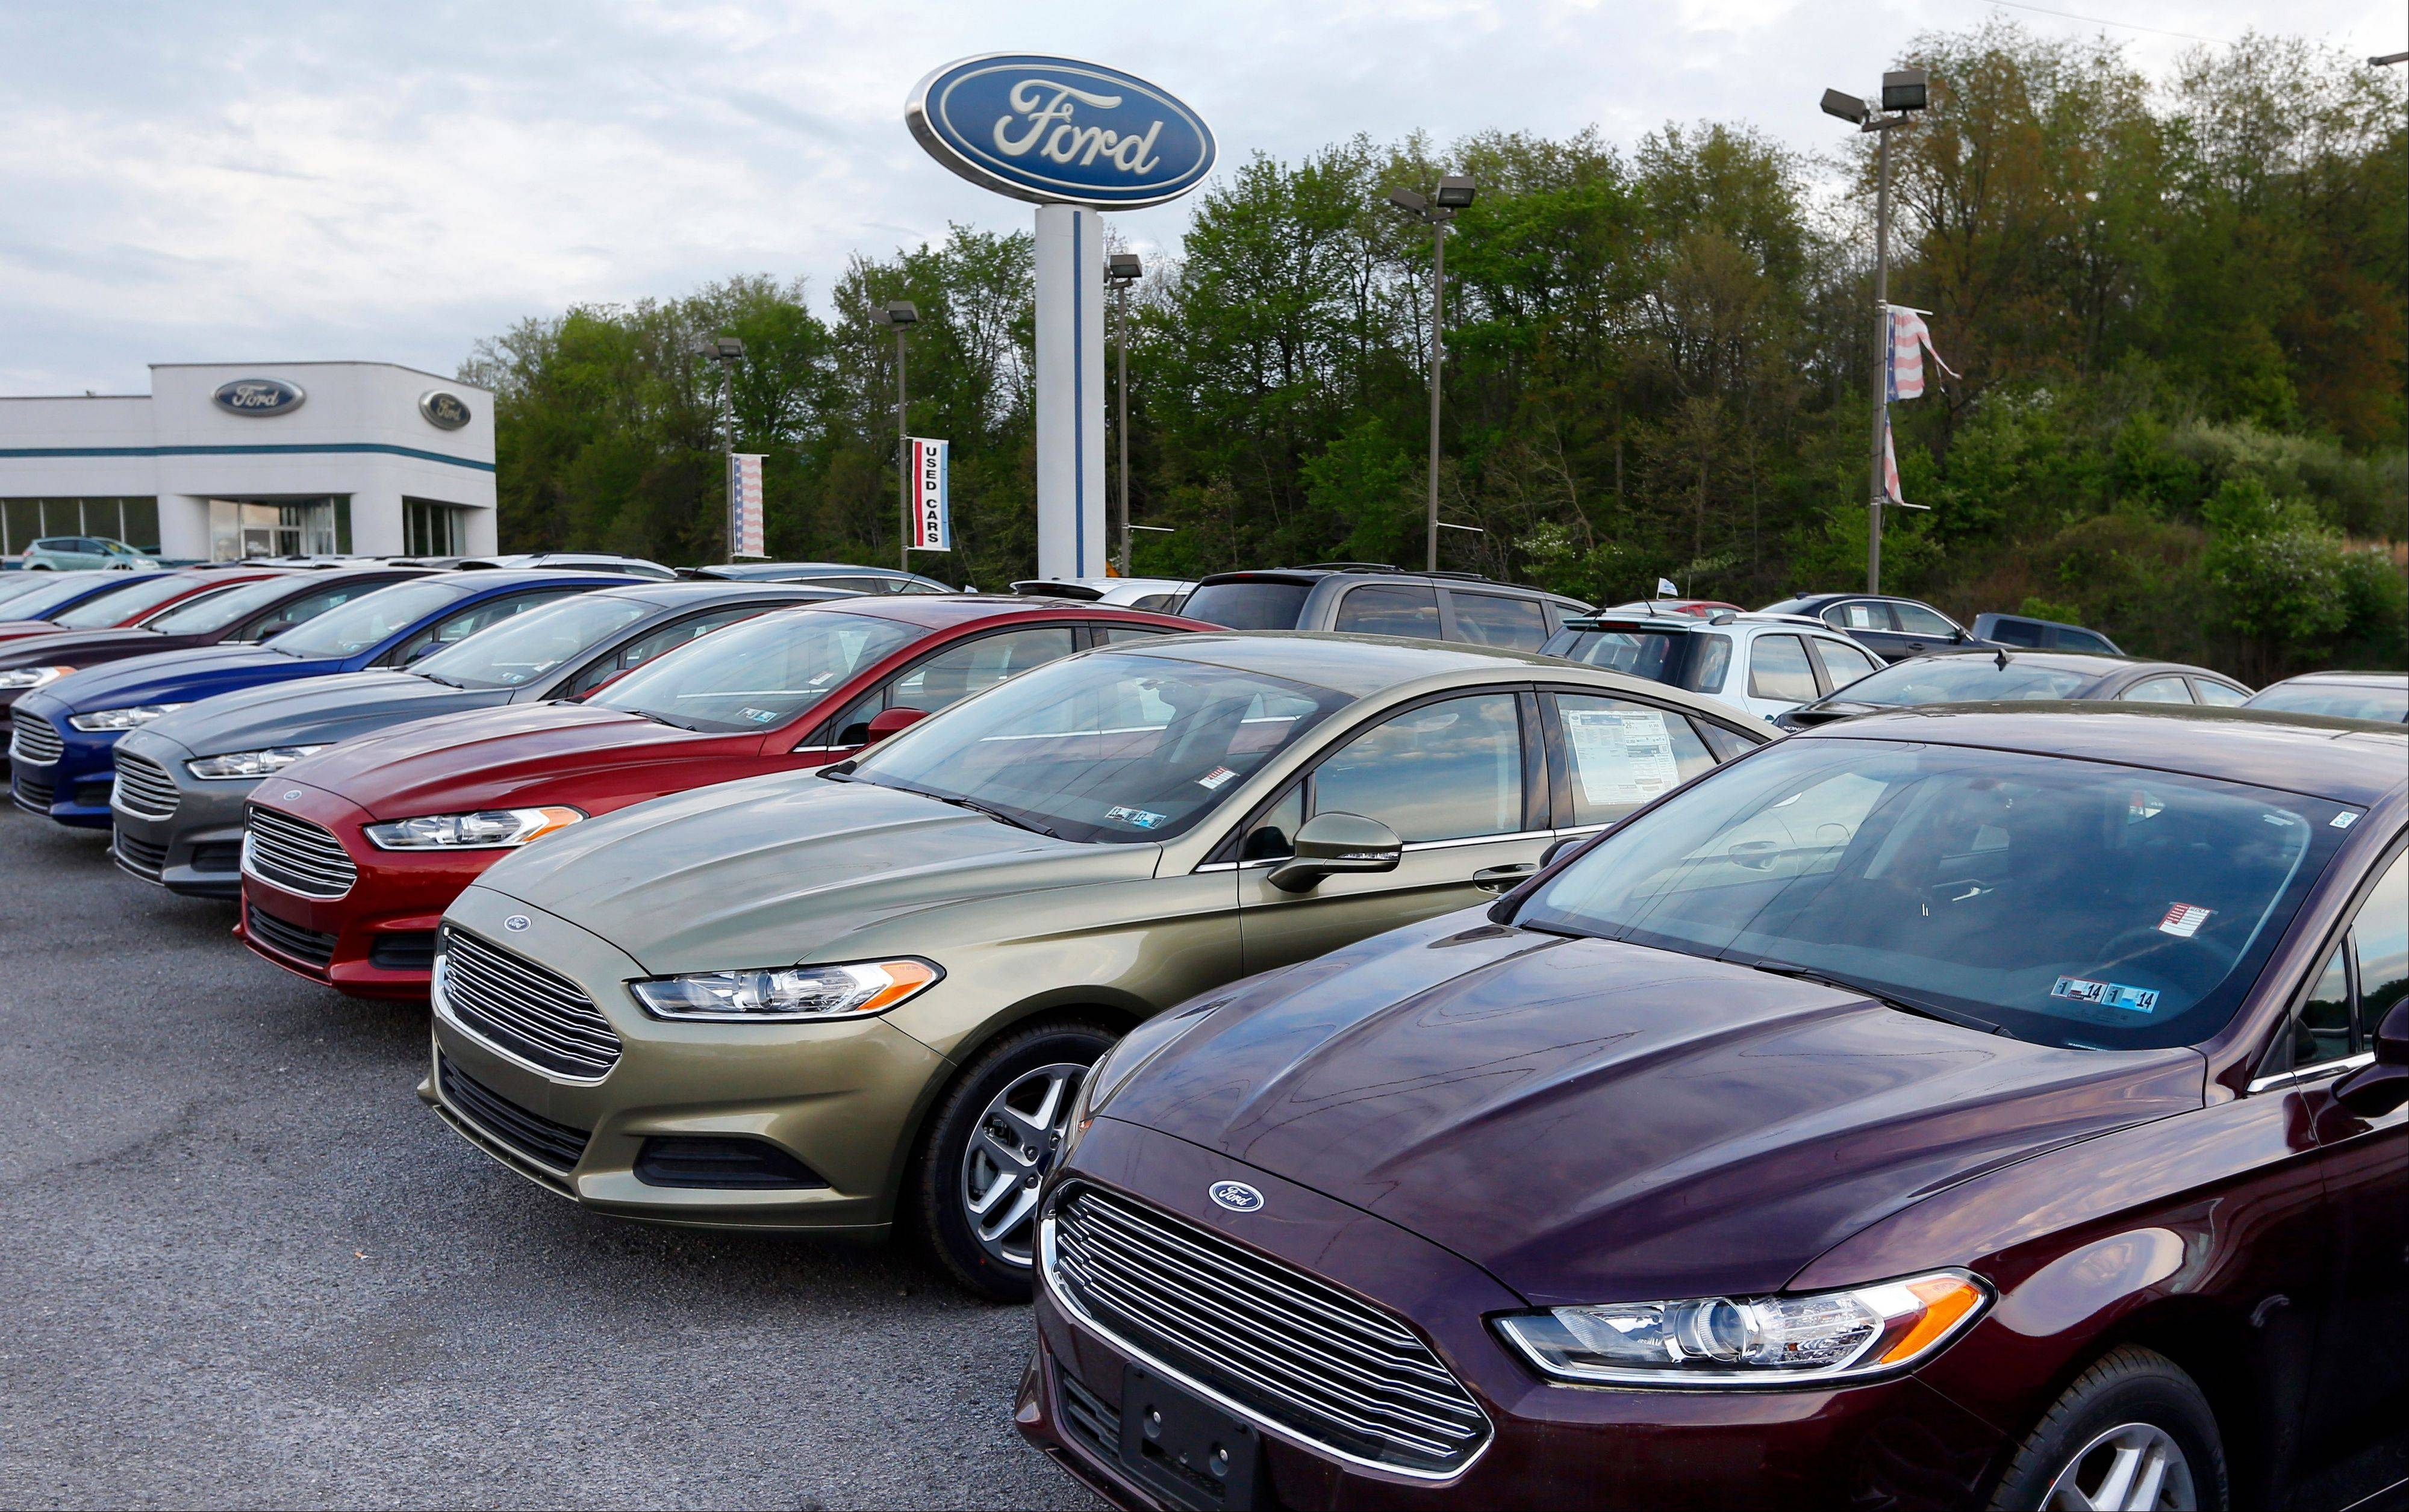 New 2013 Ford Fusions at an automobile dealer in Zelienople, Pa. U.S. buyers snapped up new cars and trucks in June at a pace not seen since before the recession. Continuing demand for big pickups helped boost sales for Detroit�s automakers. Ford said Tuesday that its sales rose 14 percent,